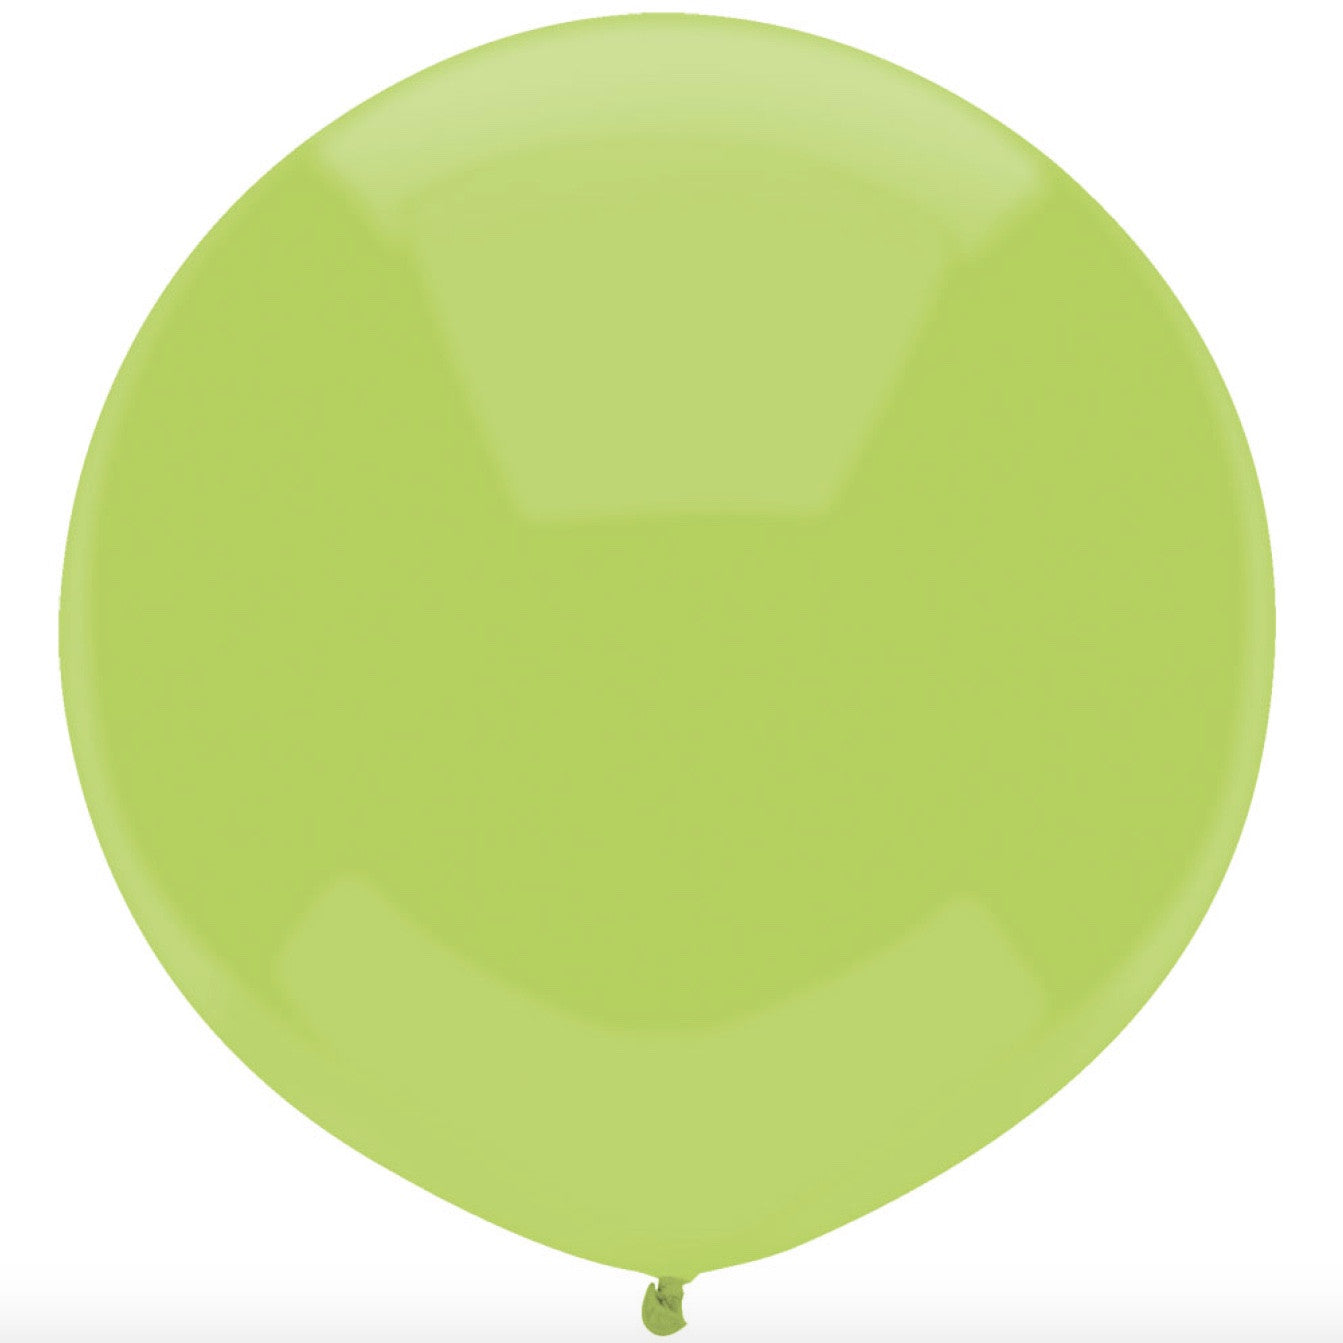 "Round Outdoor Balloon 17""- Kiwi Lime, SE-Surprize Enterprize, Putti Fine Furnishings"